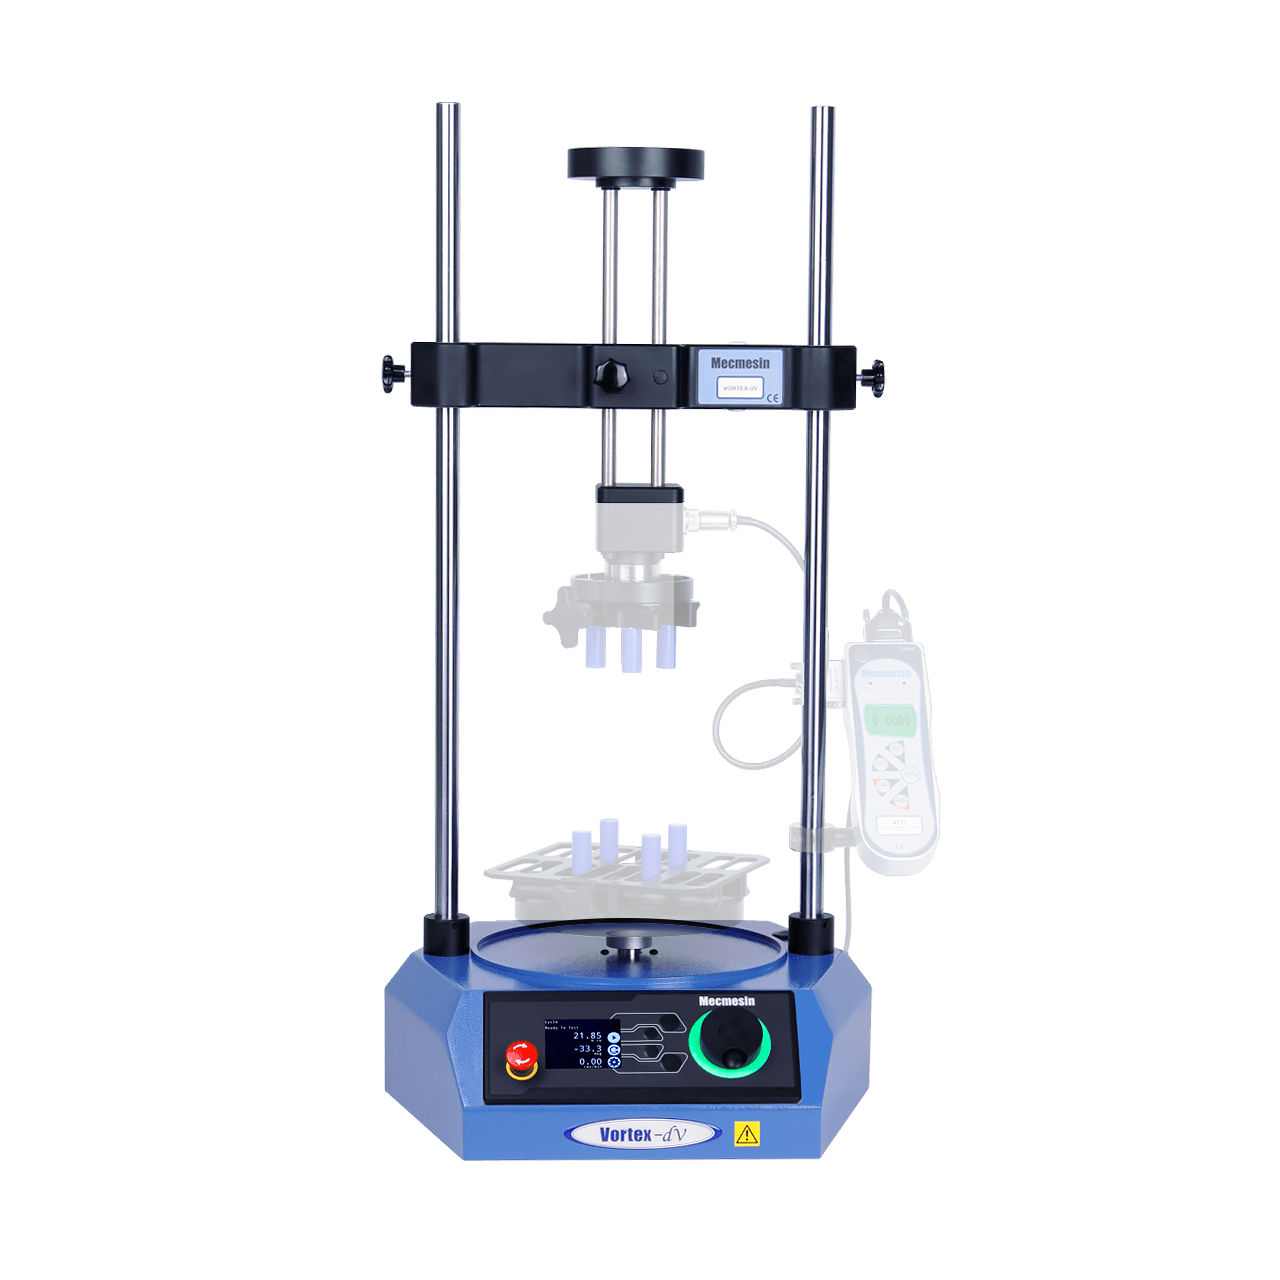 Vortex-dV motorised torque testing system frame/stand emphasised